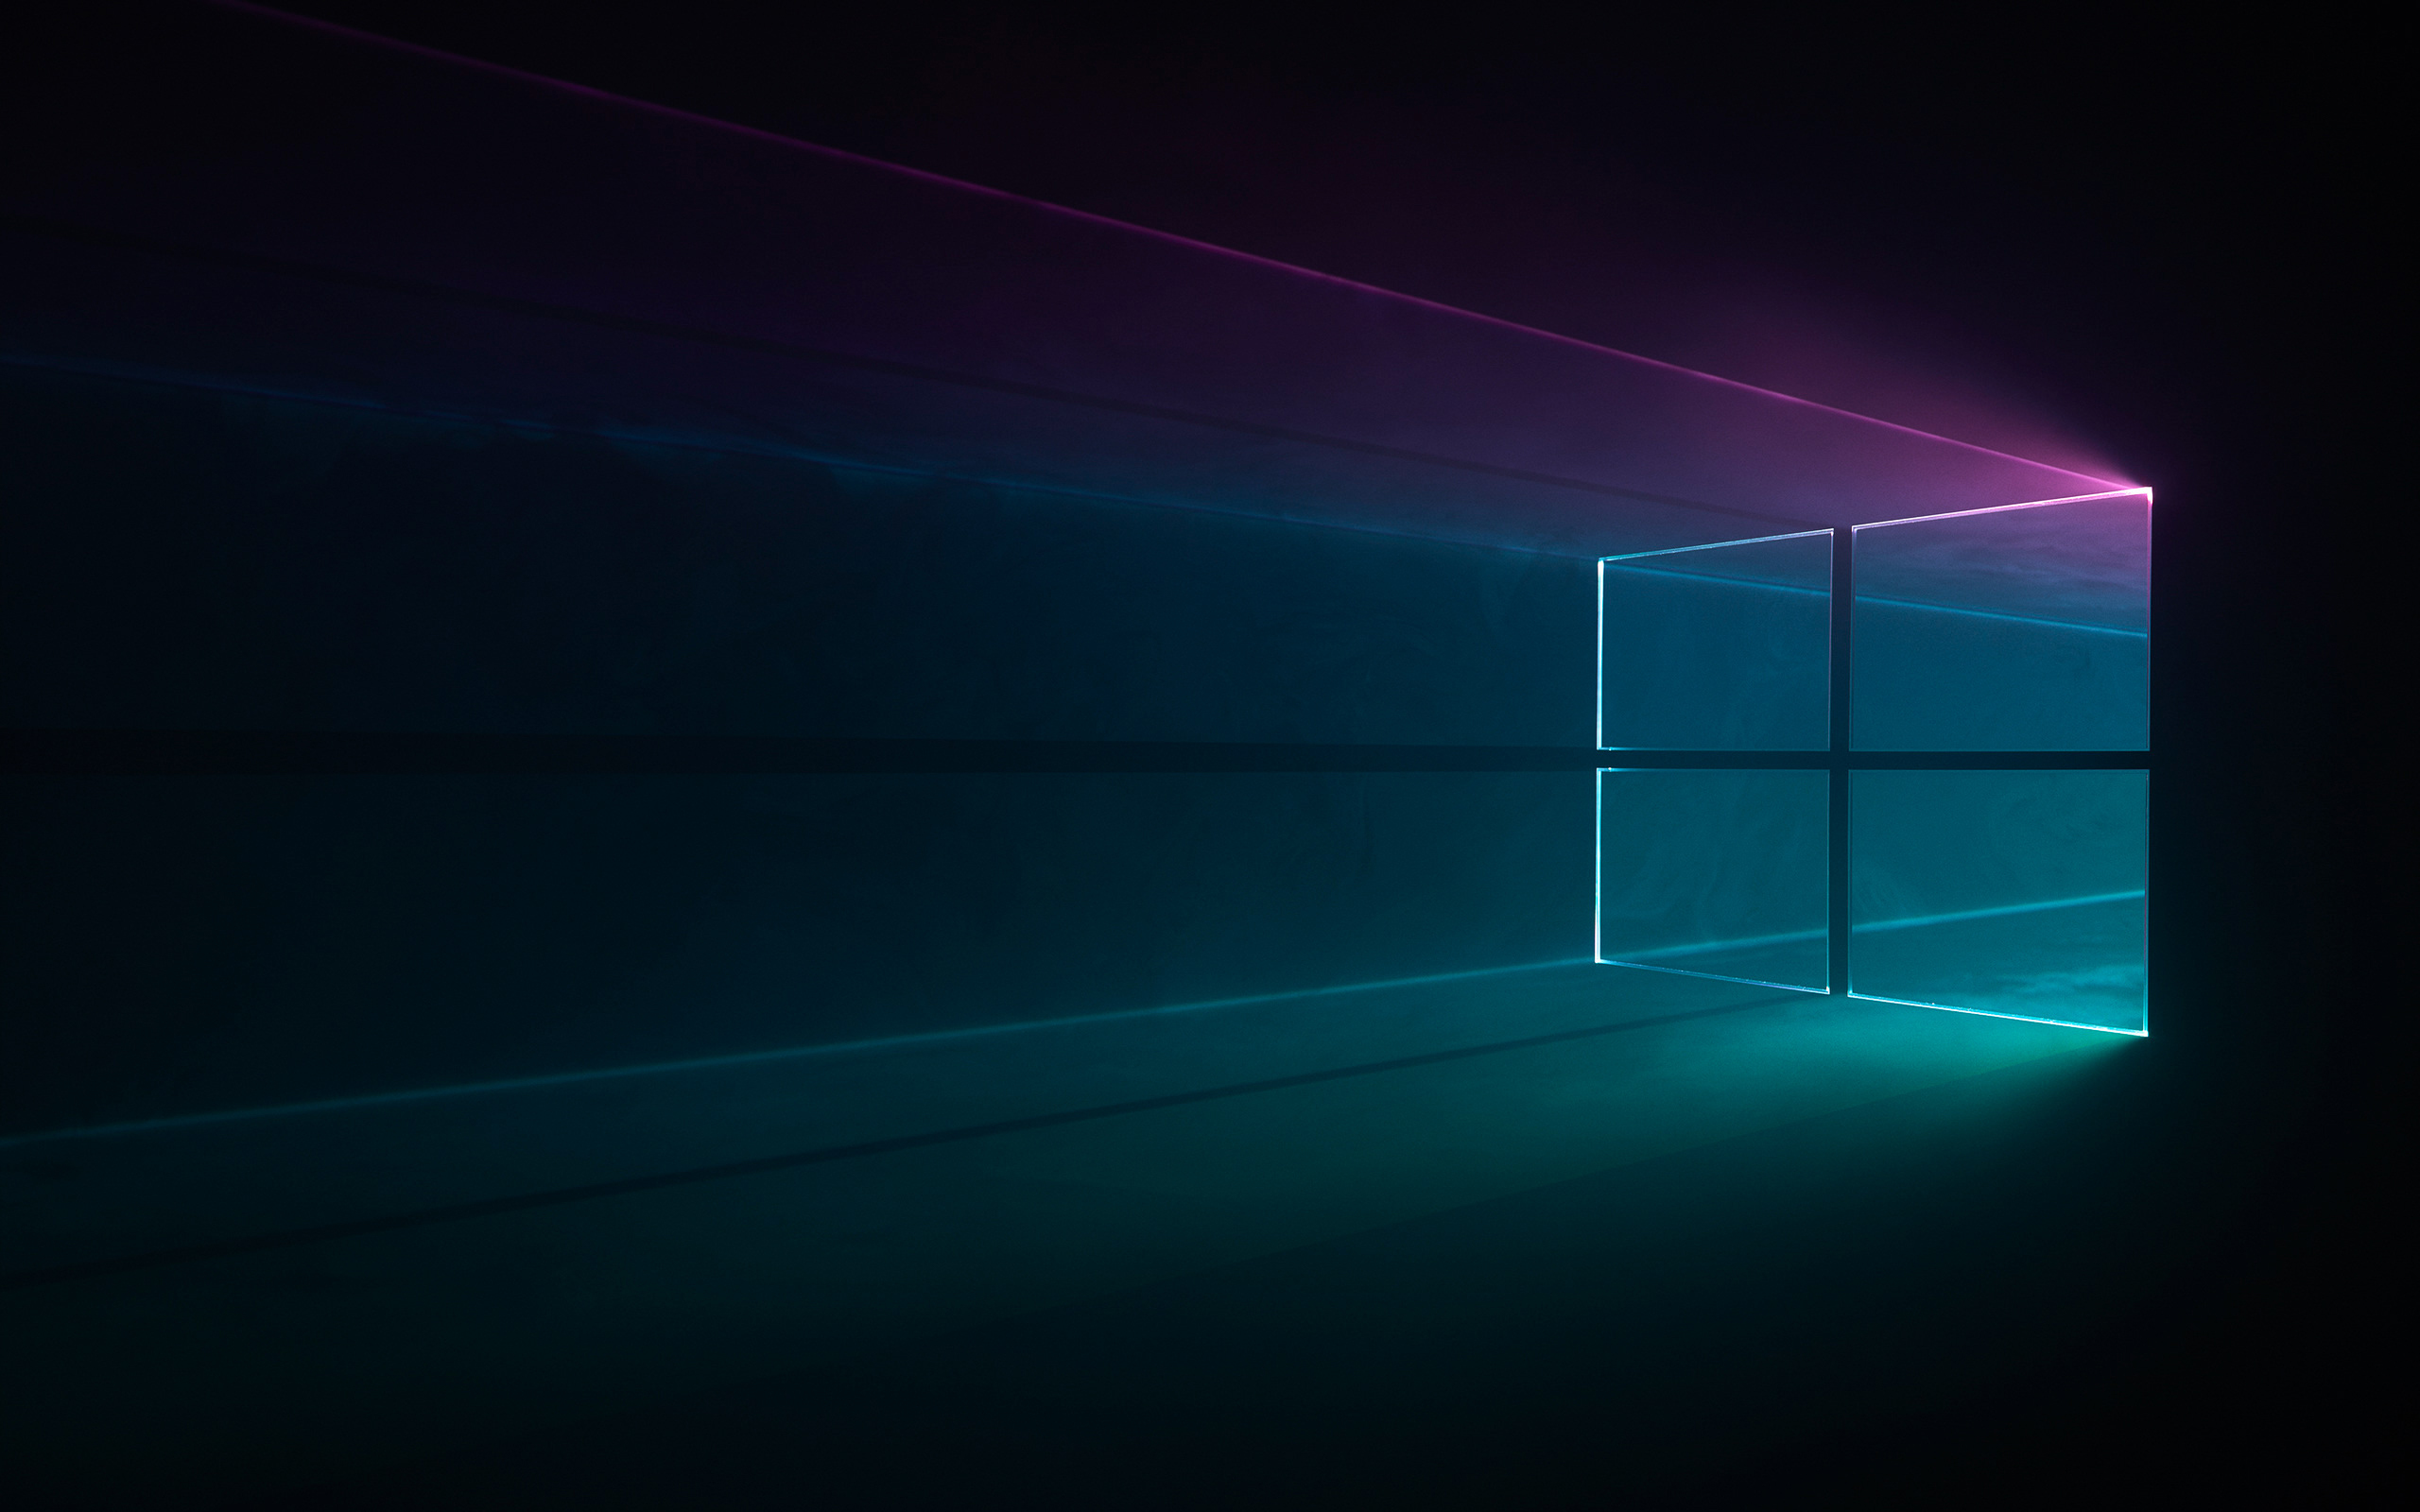 1336x768 Windows 10 Dark Hd Laptop Wallpaper Hd Hi Tech 4k